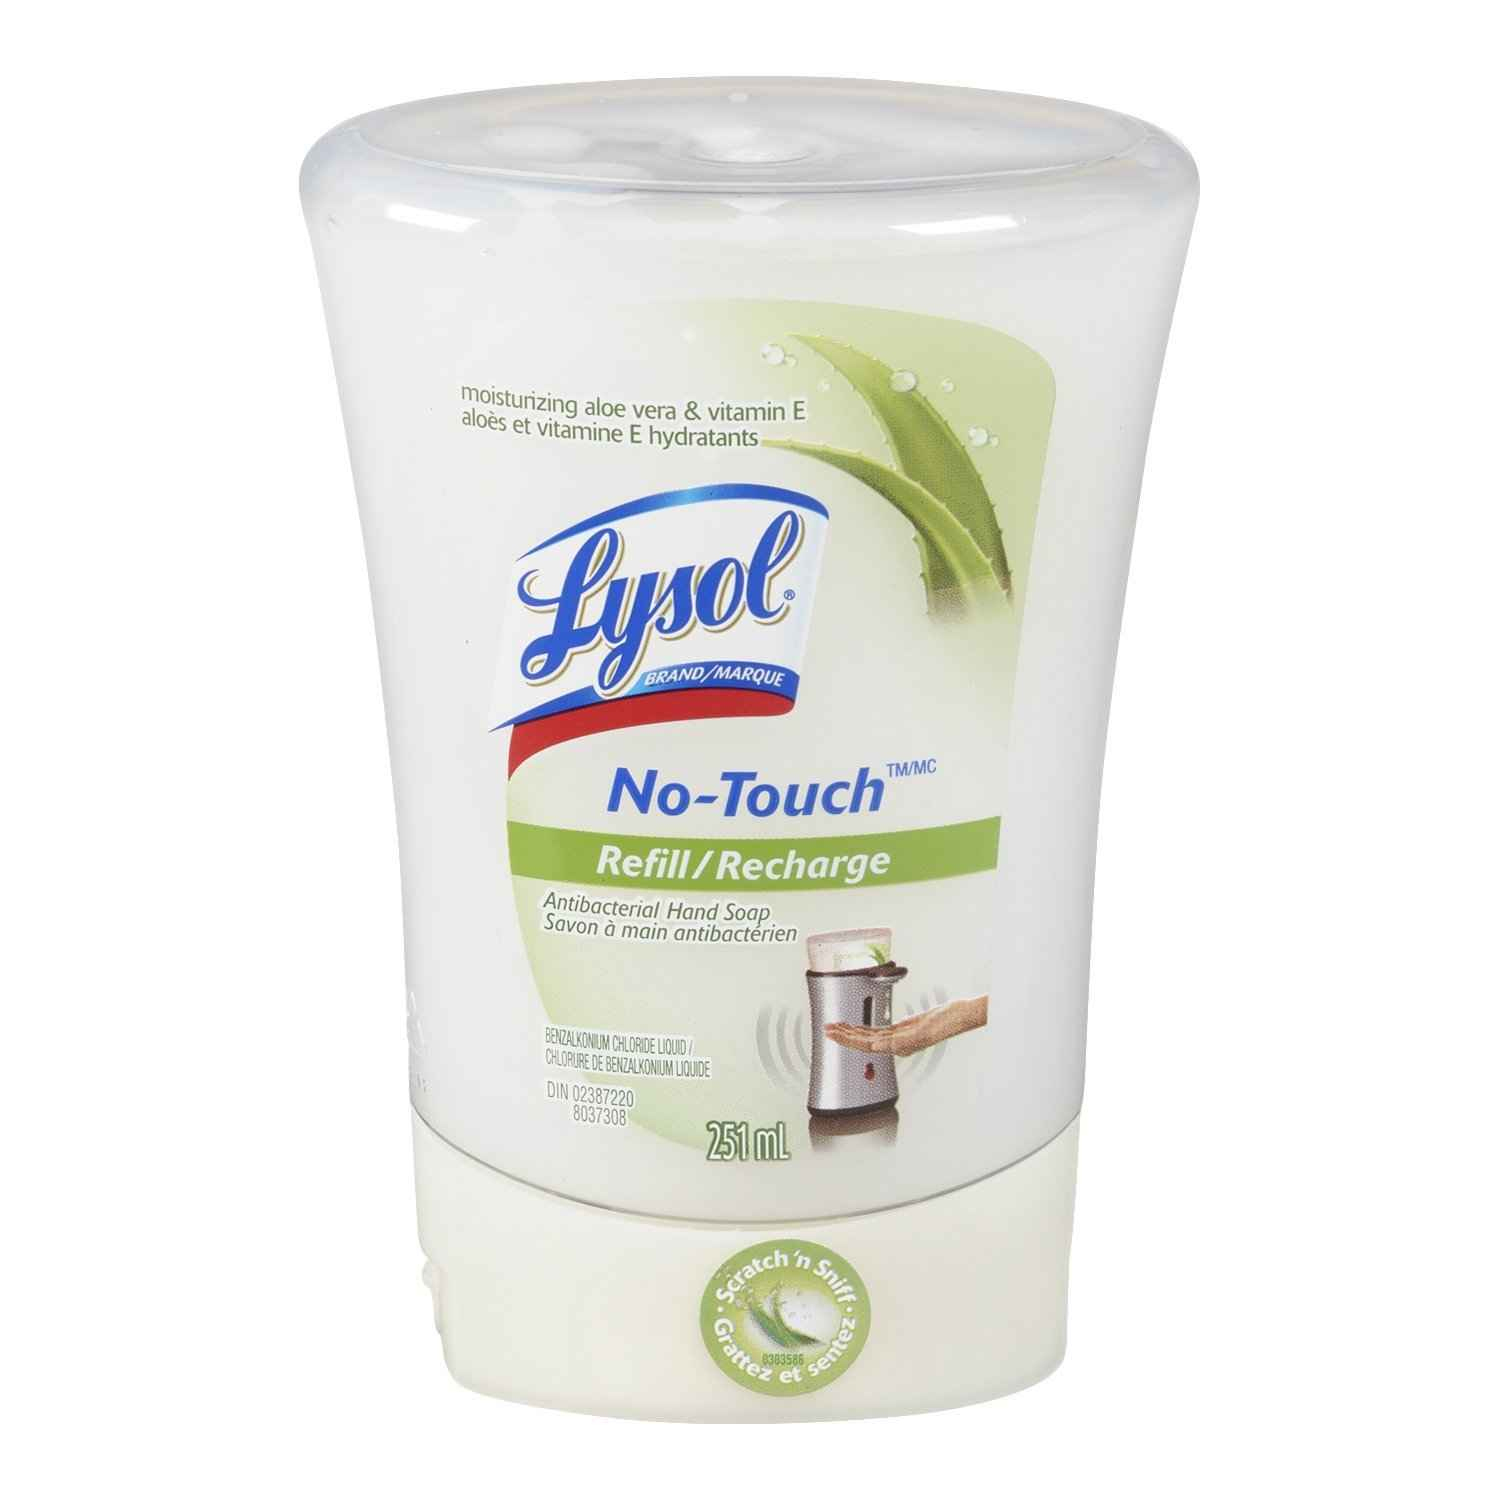 Lysol No Touch Coupon 2018 - Coupon Bond Wikipedia - Lysol Hands Free Soap Dispenser Printable Coupon